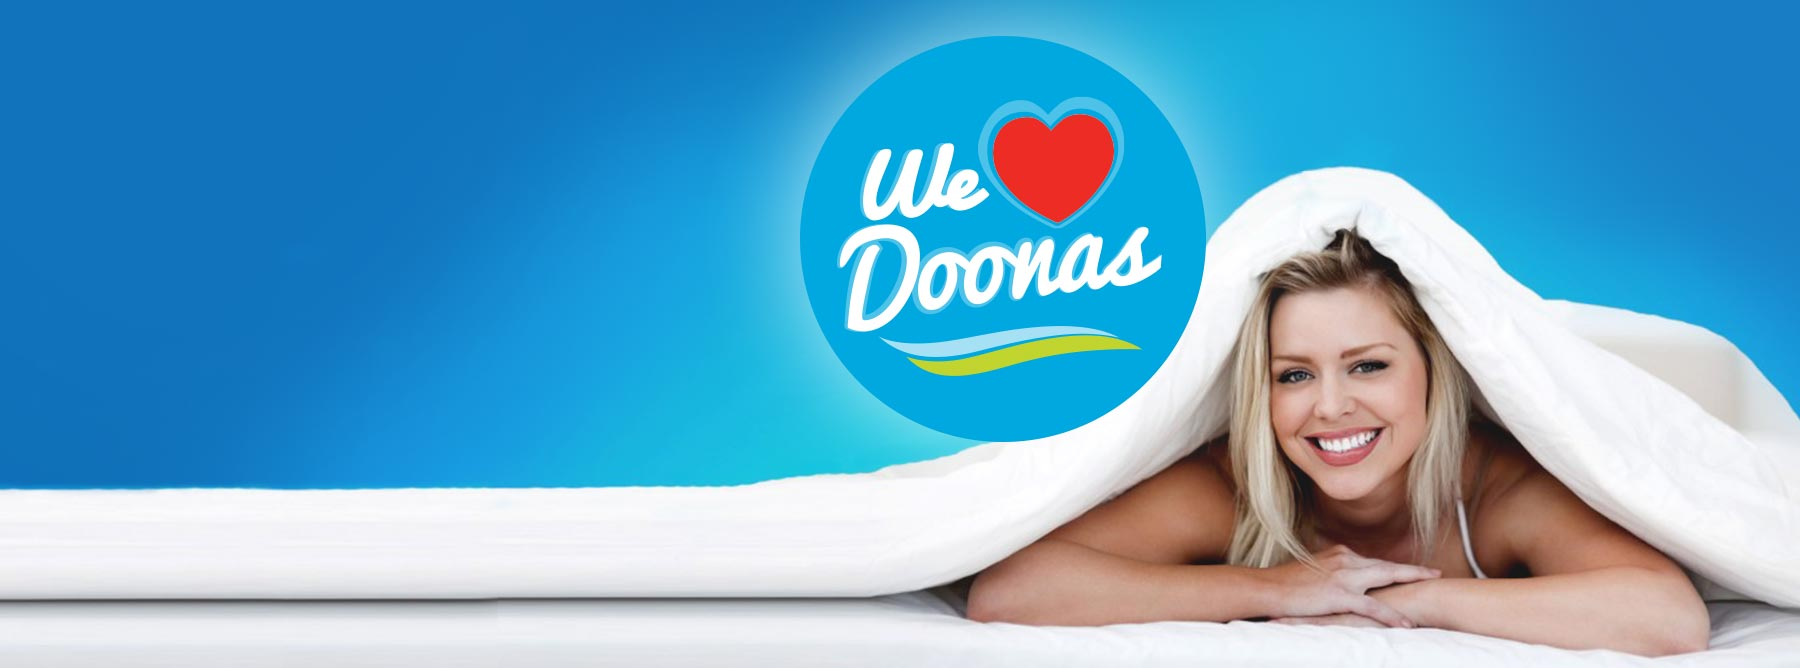 Wash & Dry your doona from $10*